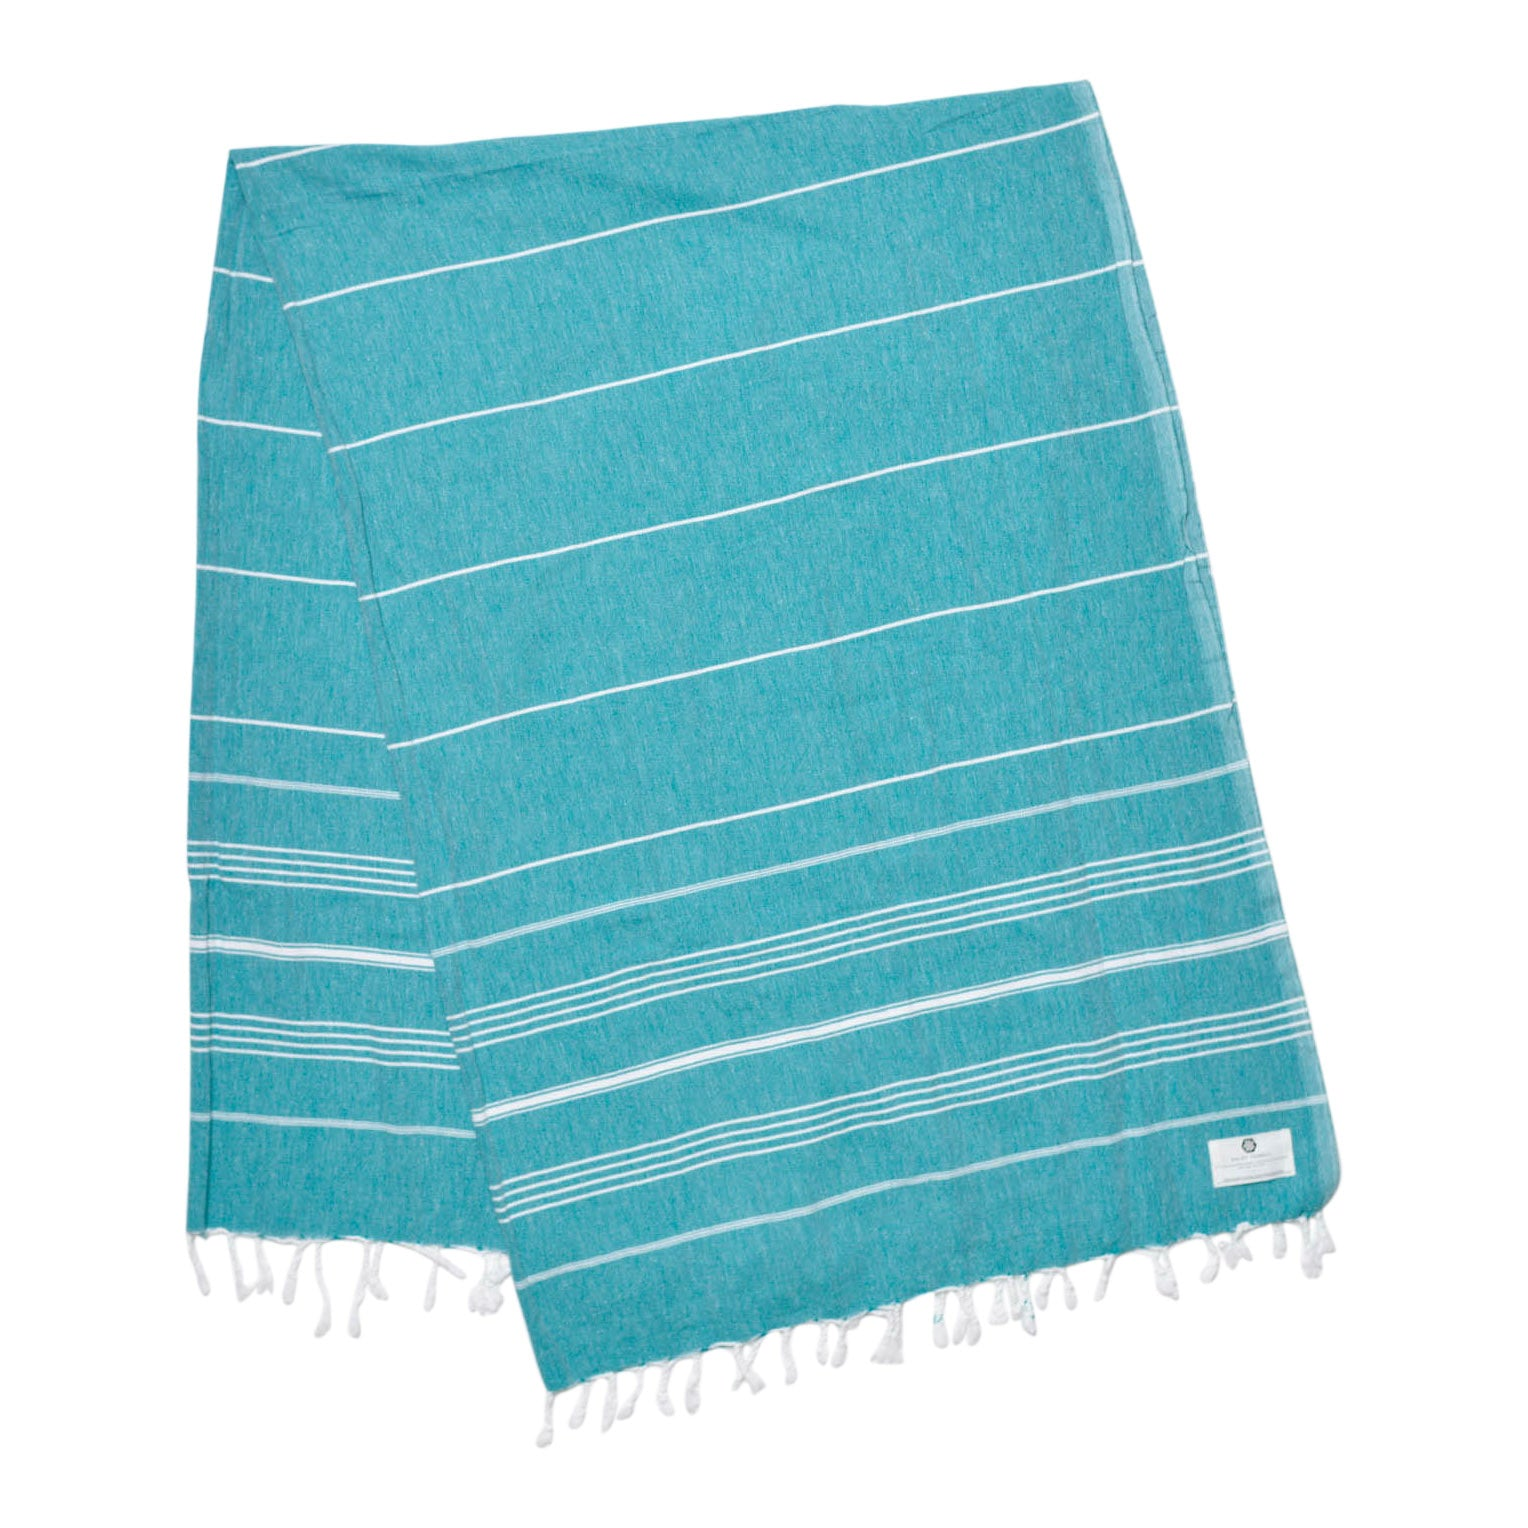 Oversized teal cotton beach and bath Turkish towel with different sizes of thin white stripes